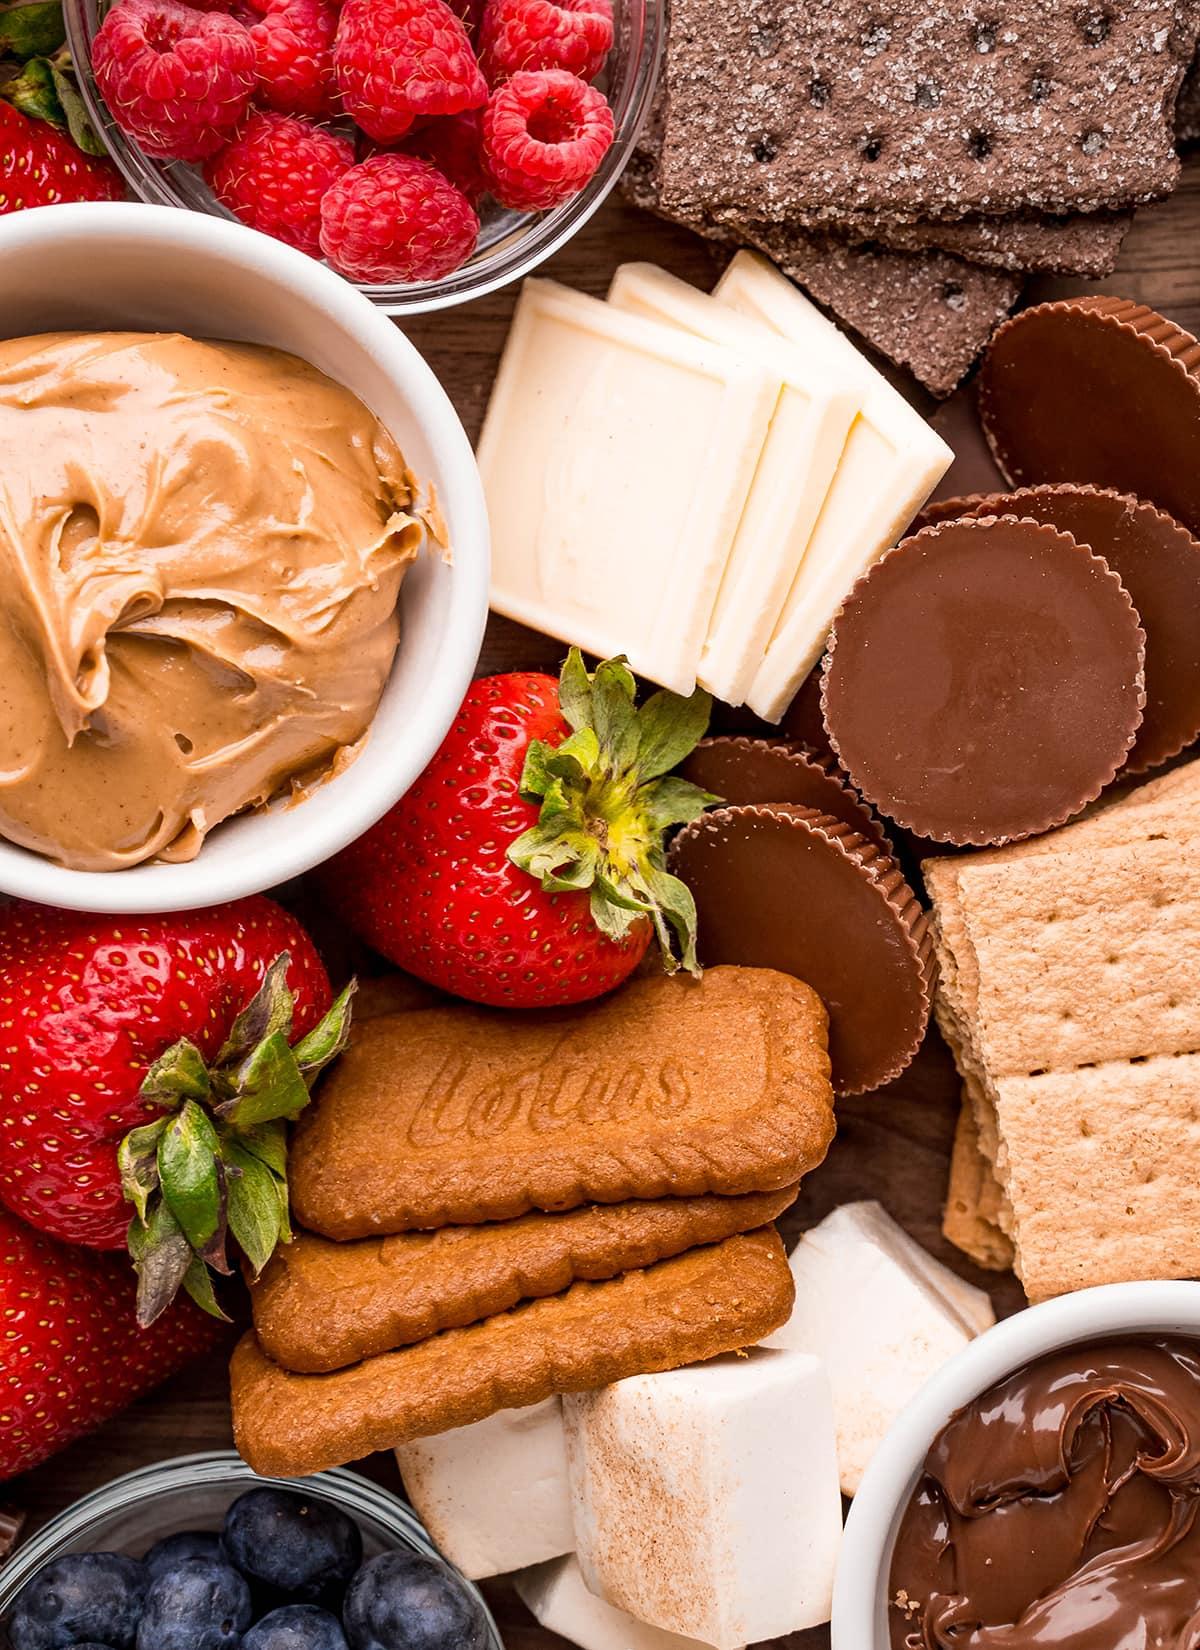 A close up of ingredients needed for a s'mores charcuterie board.